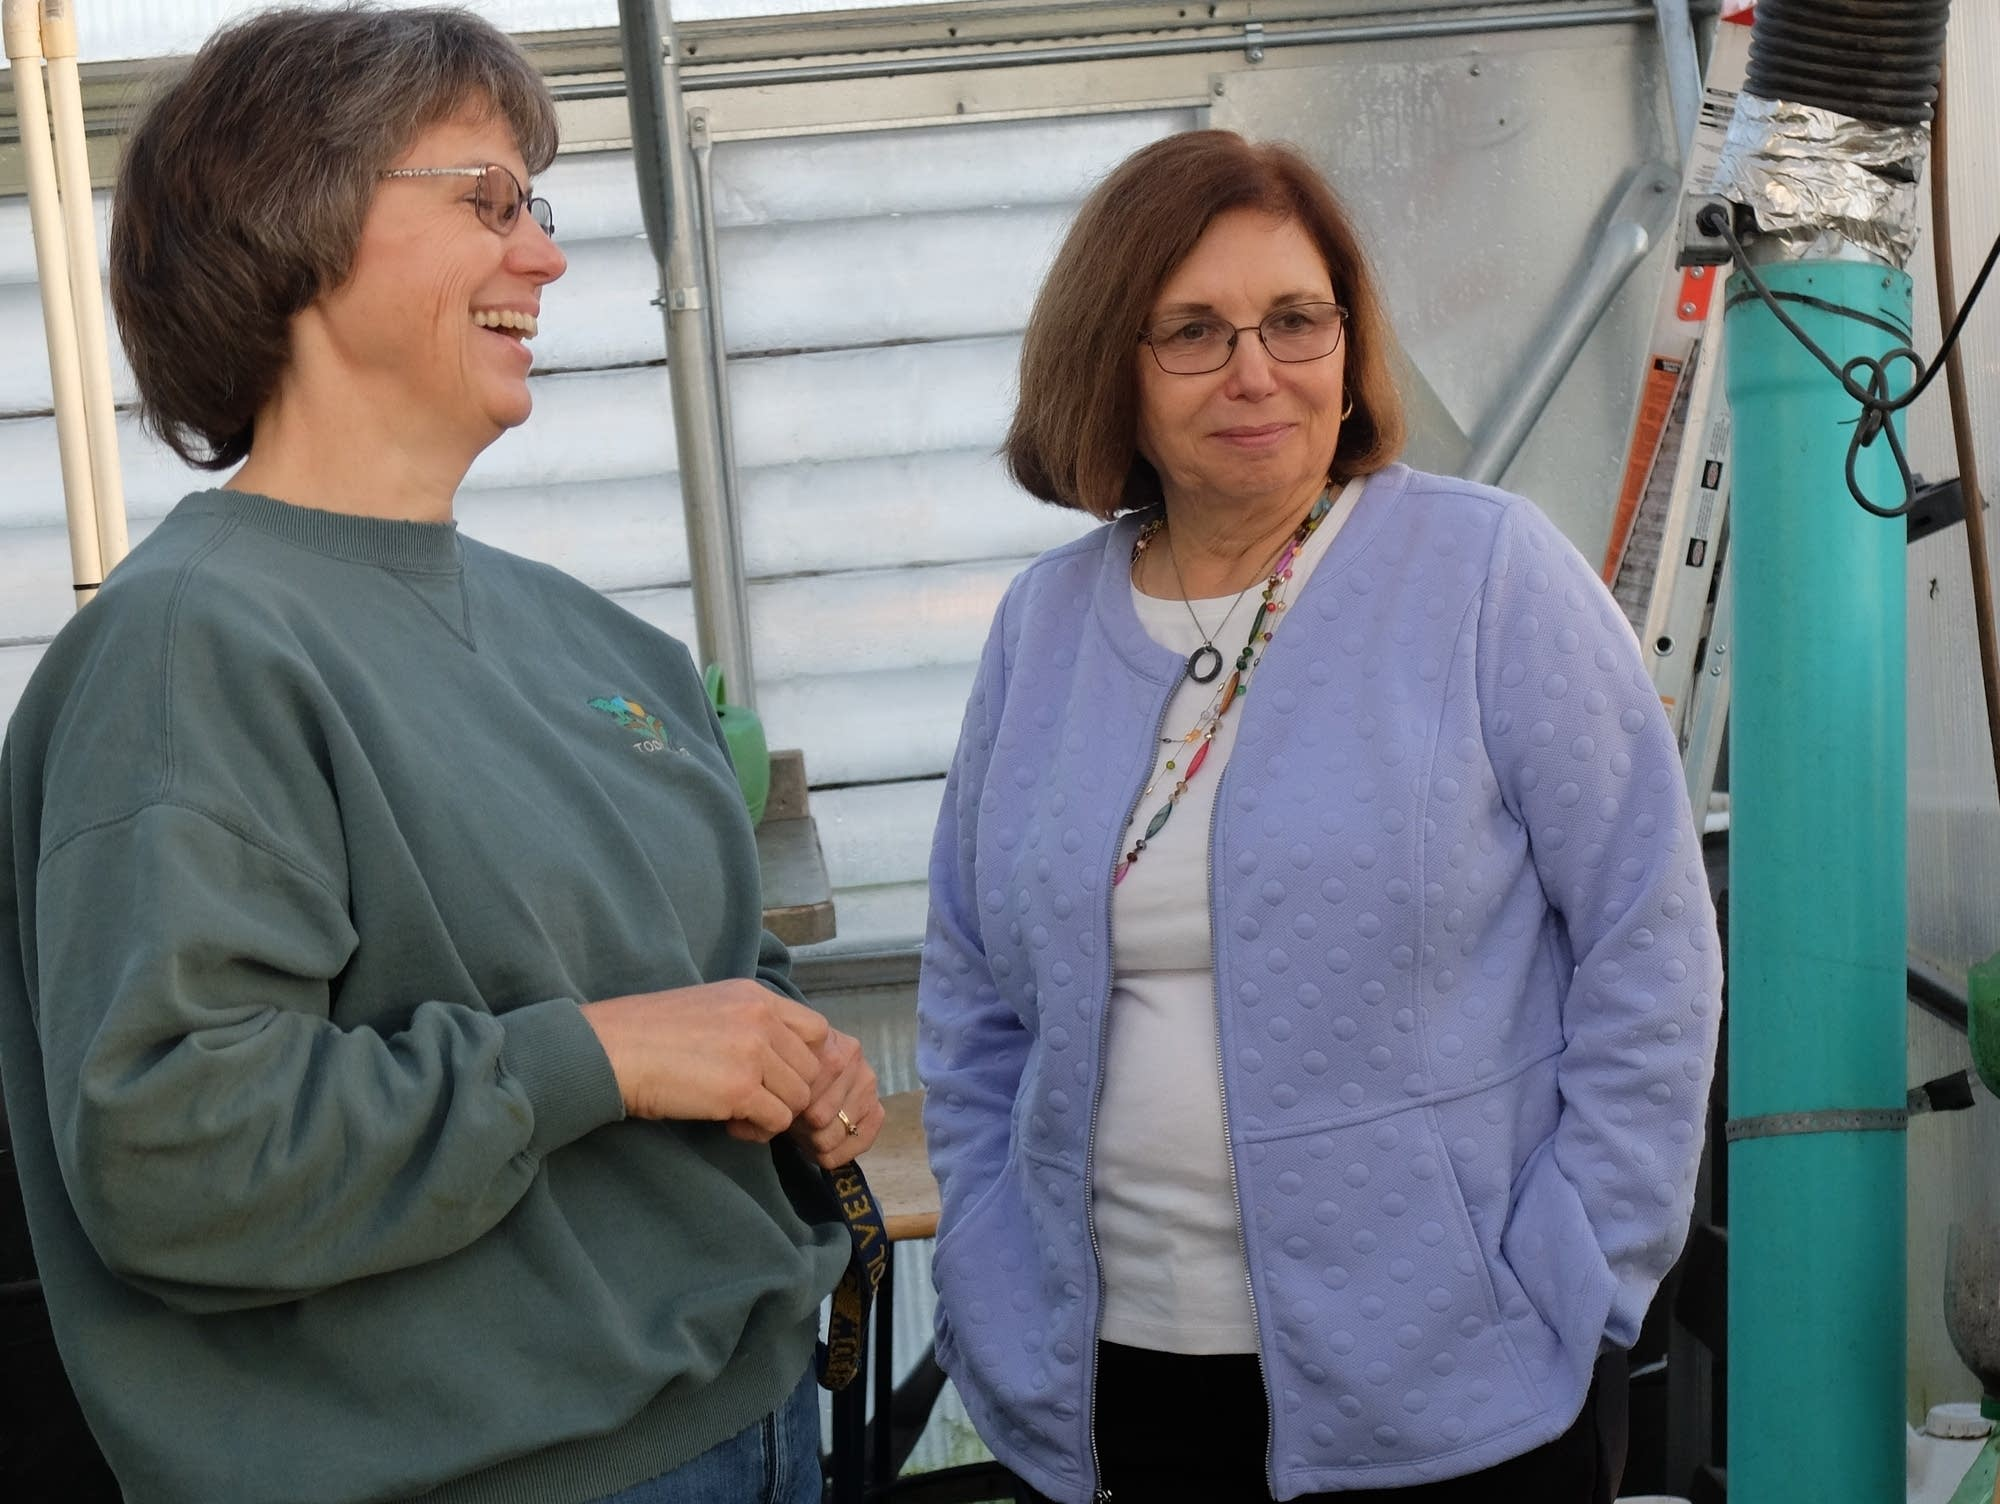 Caroline Venis and Sandie Rentz share a laugh in the greenhouse.